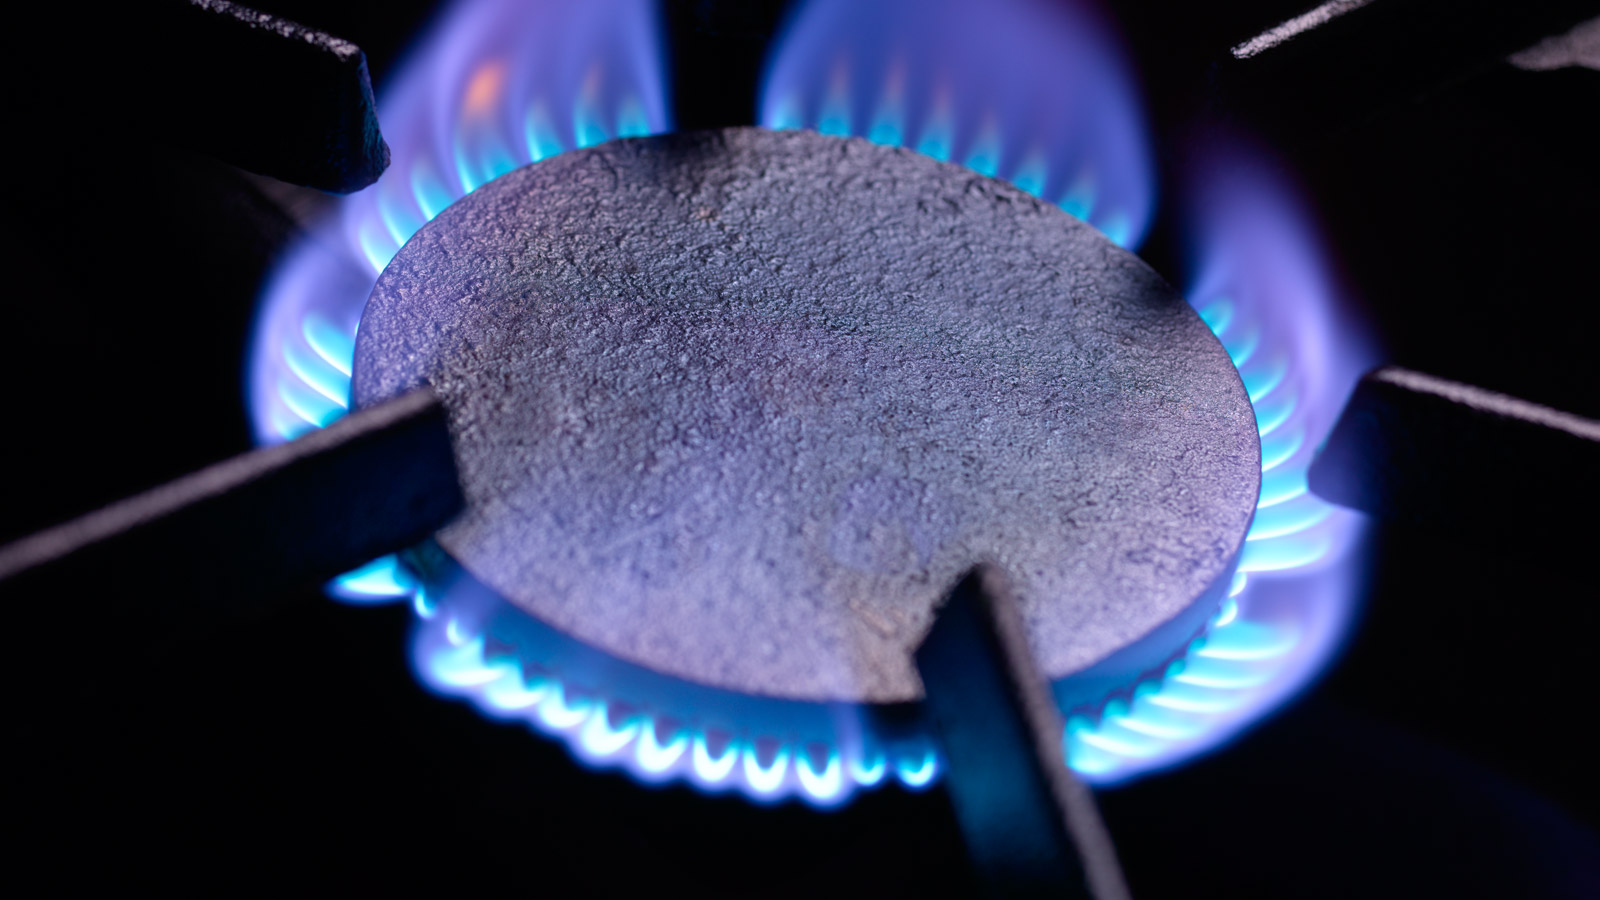 Blue flames on a gas cooker ring